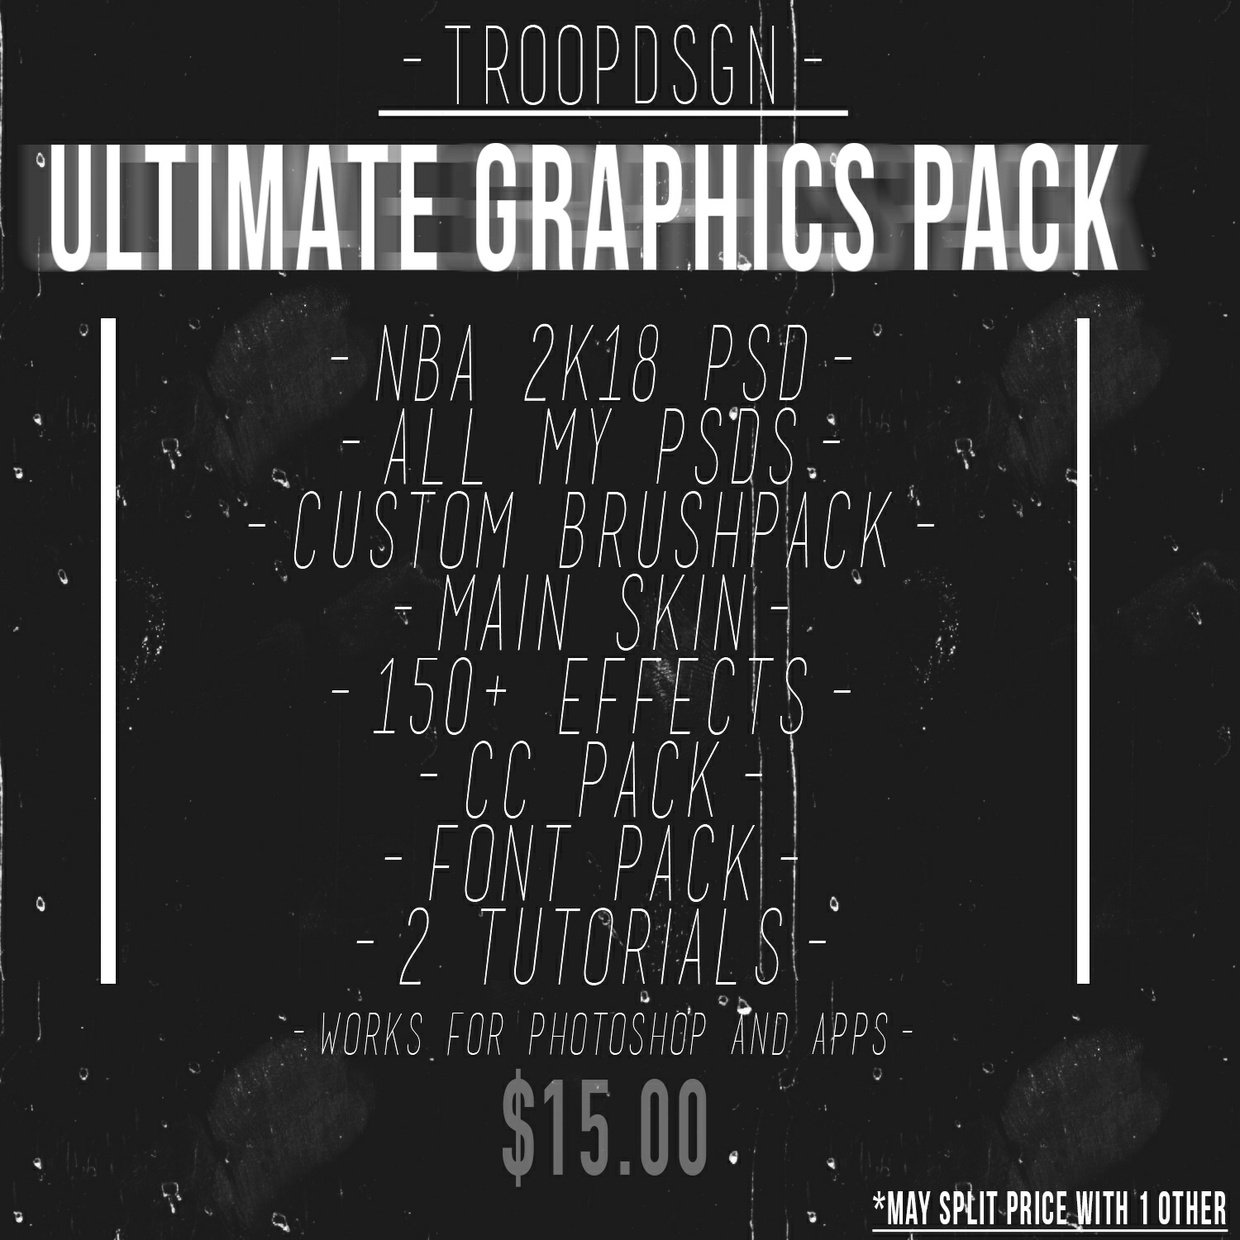 Ultimate Graphics Pack